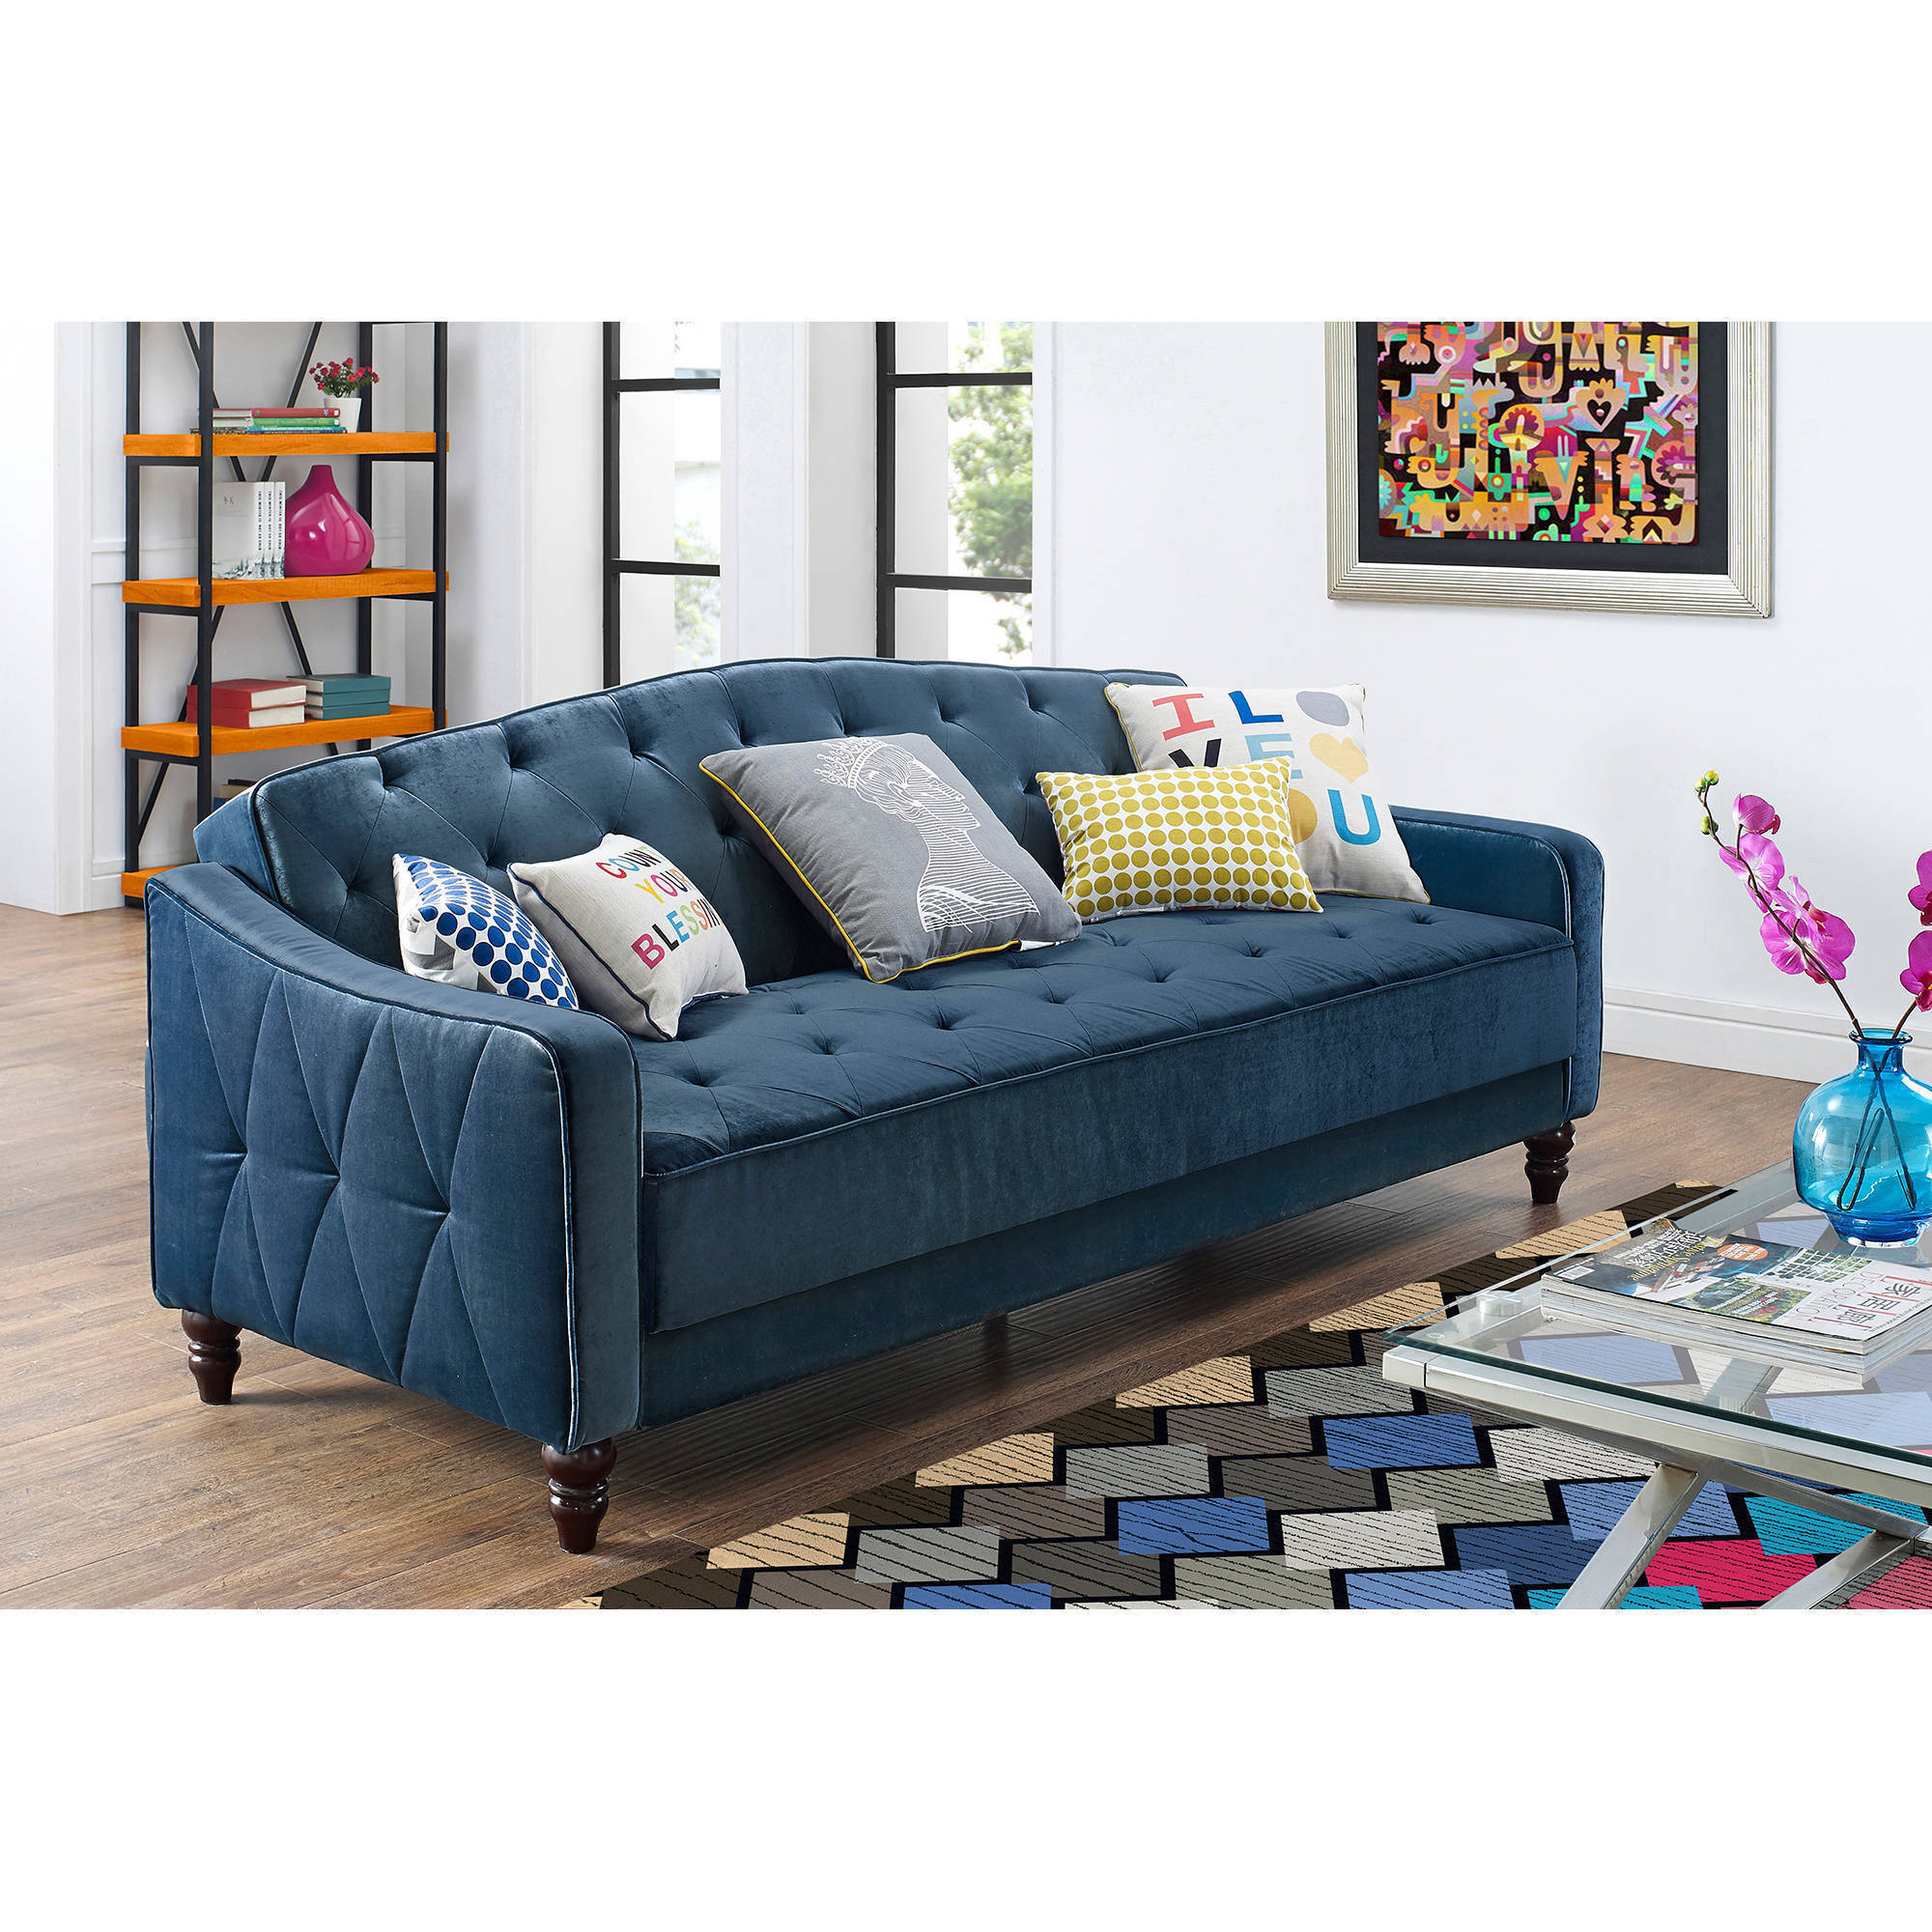 Swell Furniture Of America Richards Faux Leather Sleeper Sofa Bed In Black Camellatalisay Diy Chair Ideas Camellatalisaycom